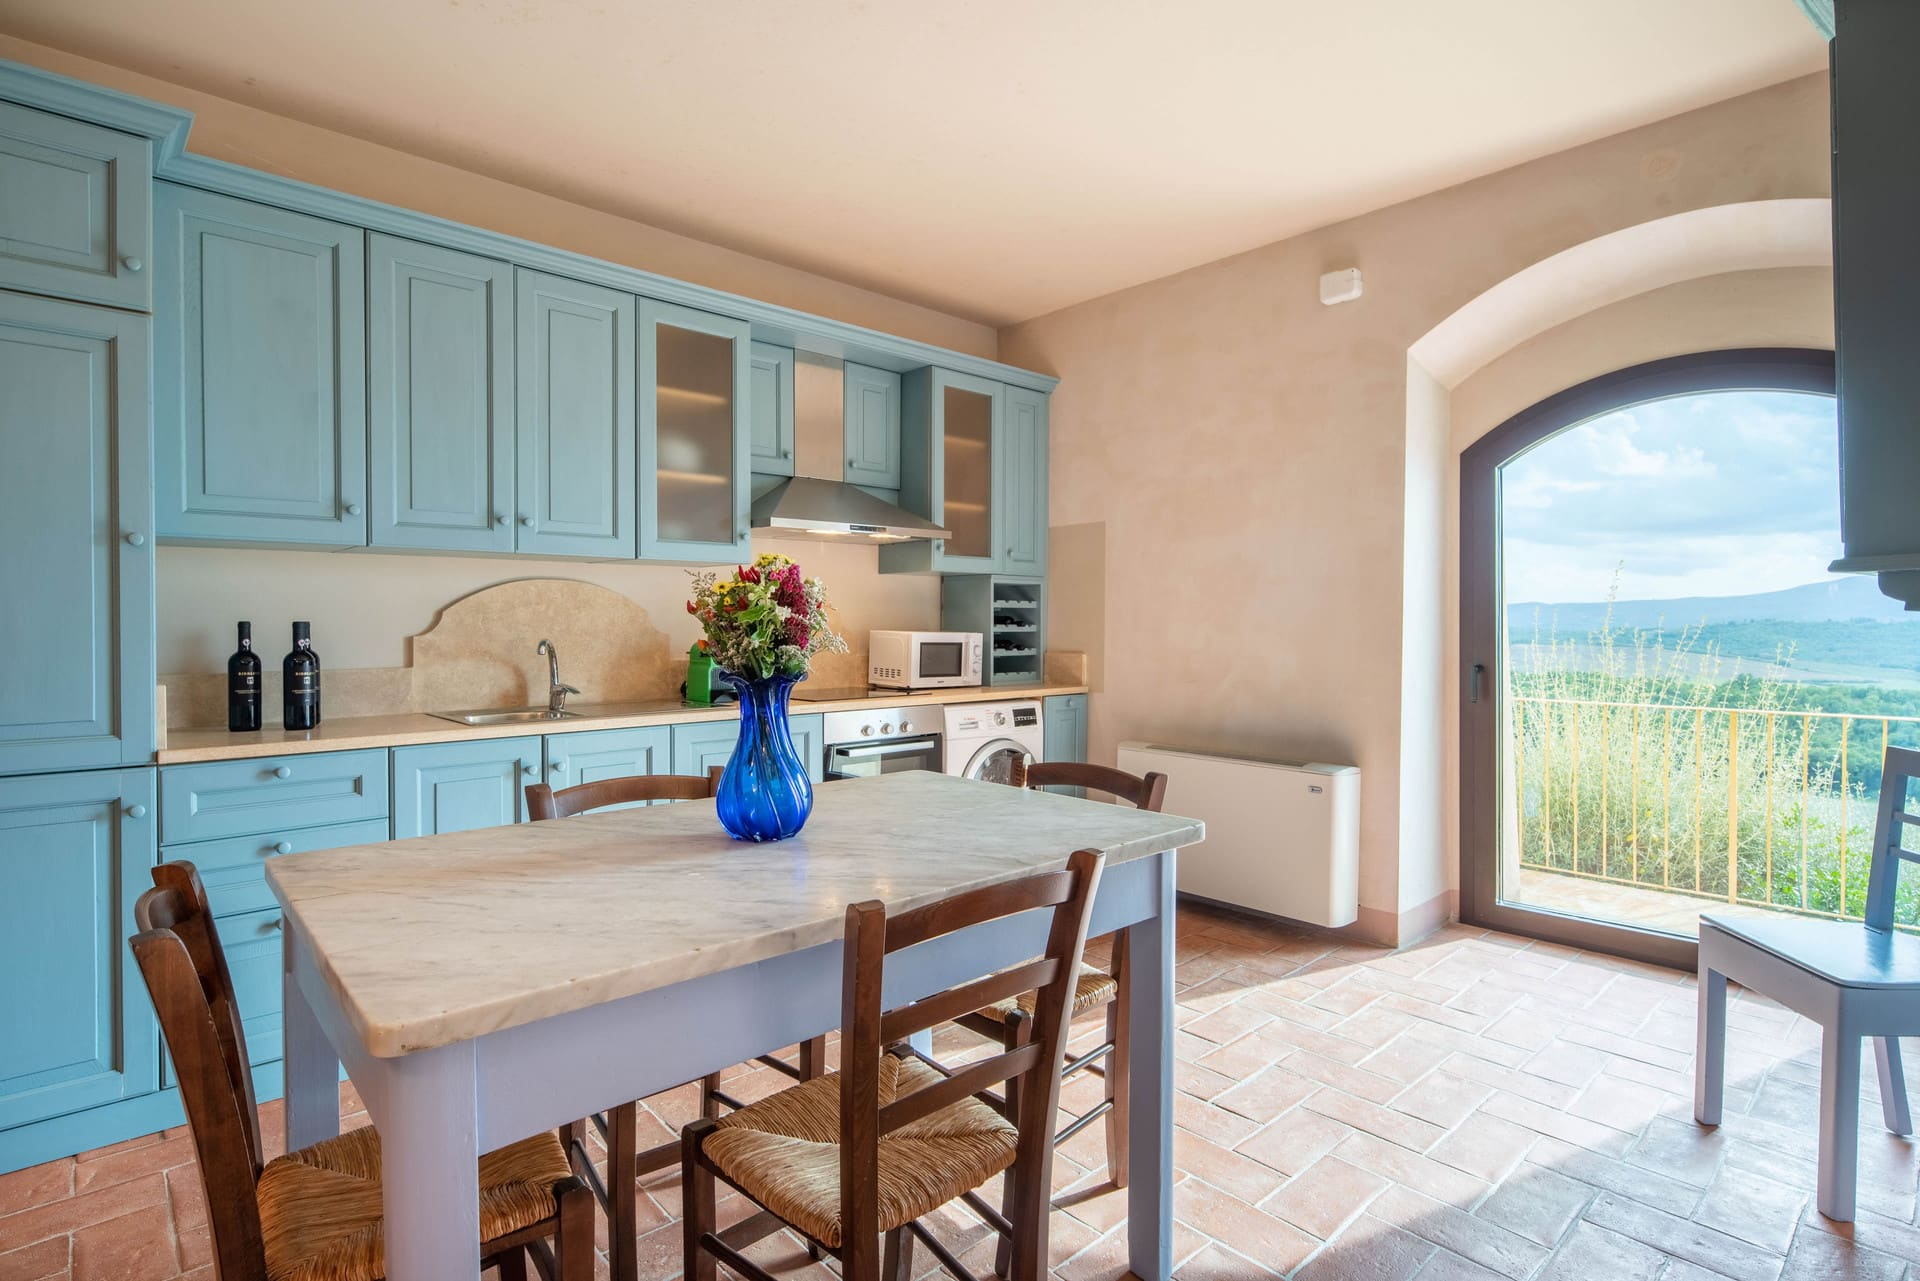 Rustic kitchen with dining table and panoramic view - Bibbiano - Il Fico Apartment